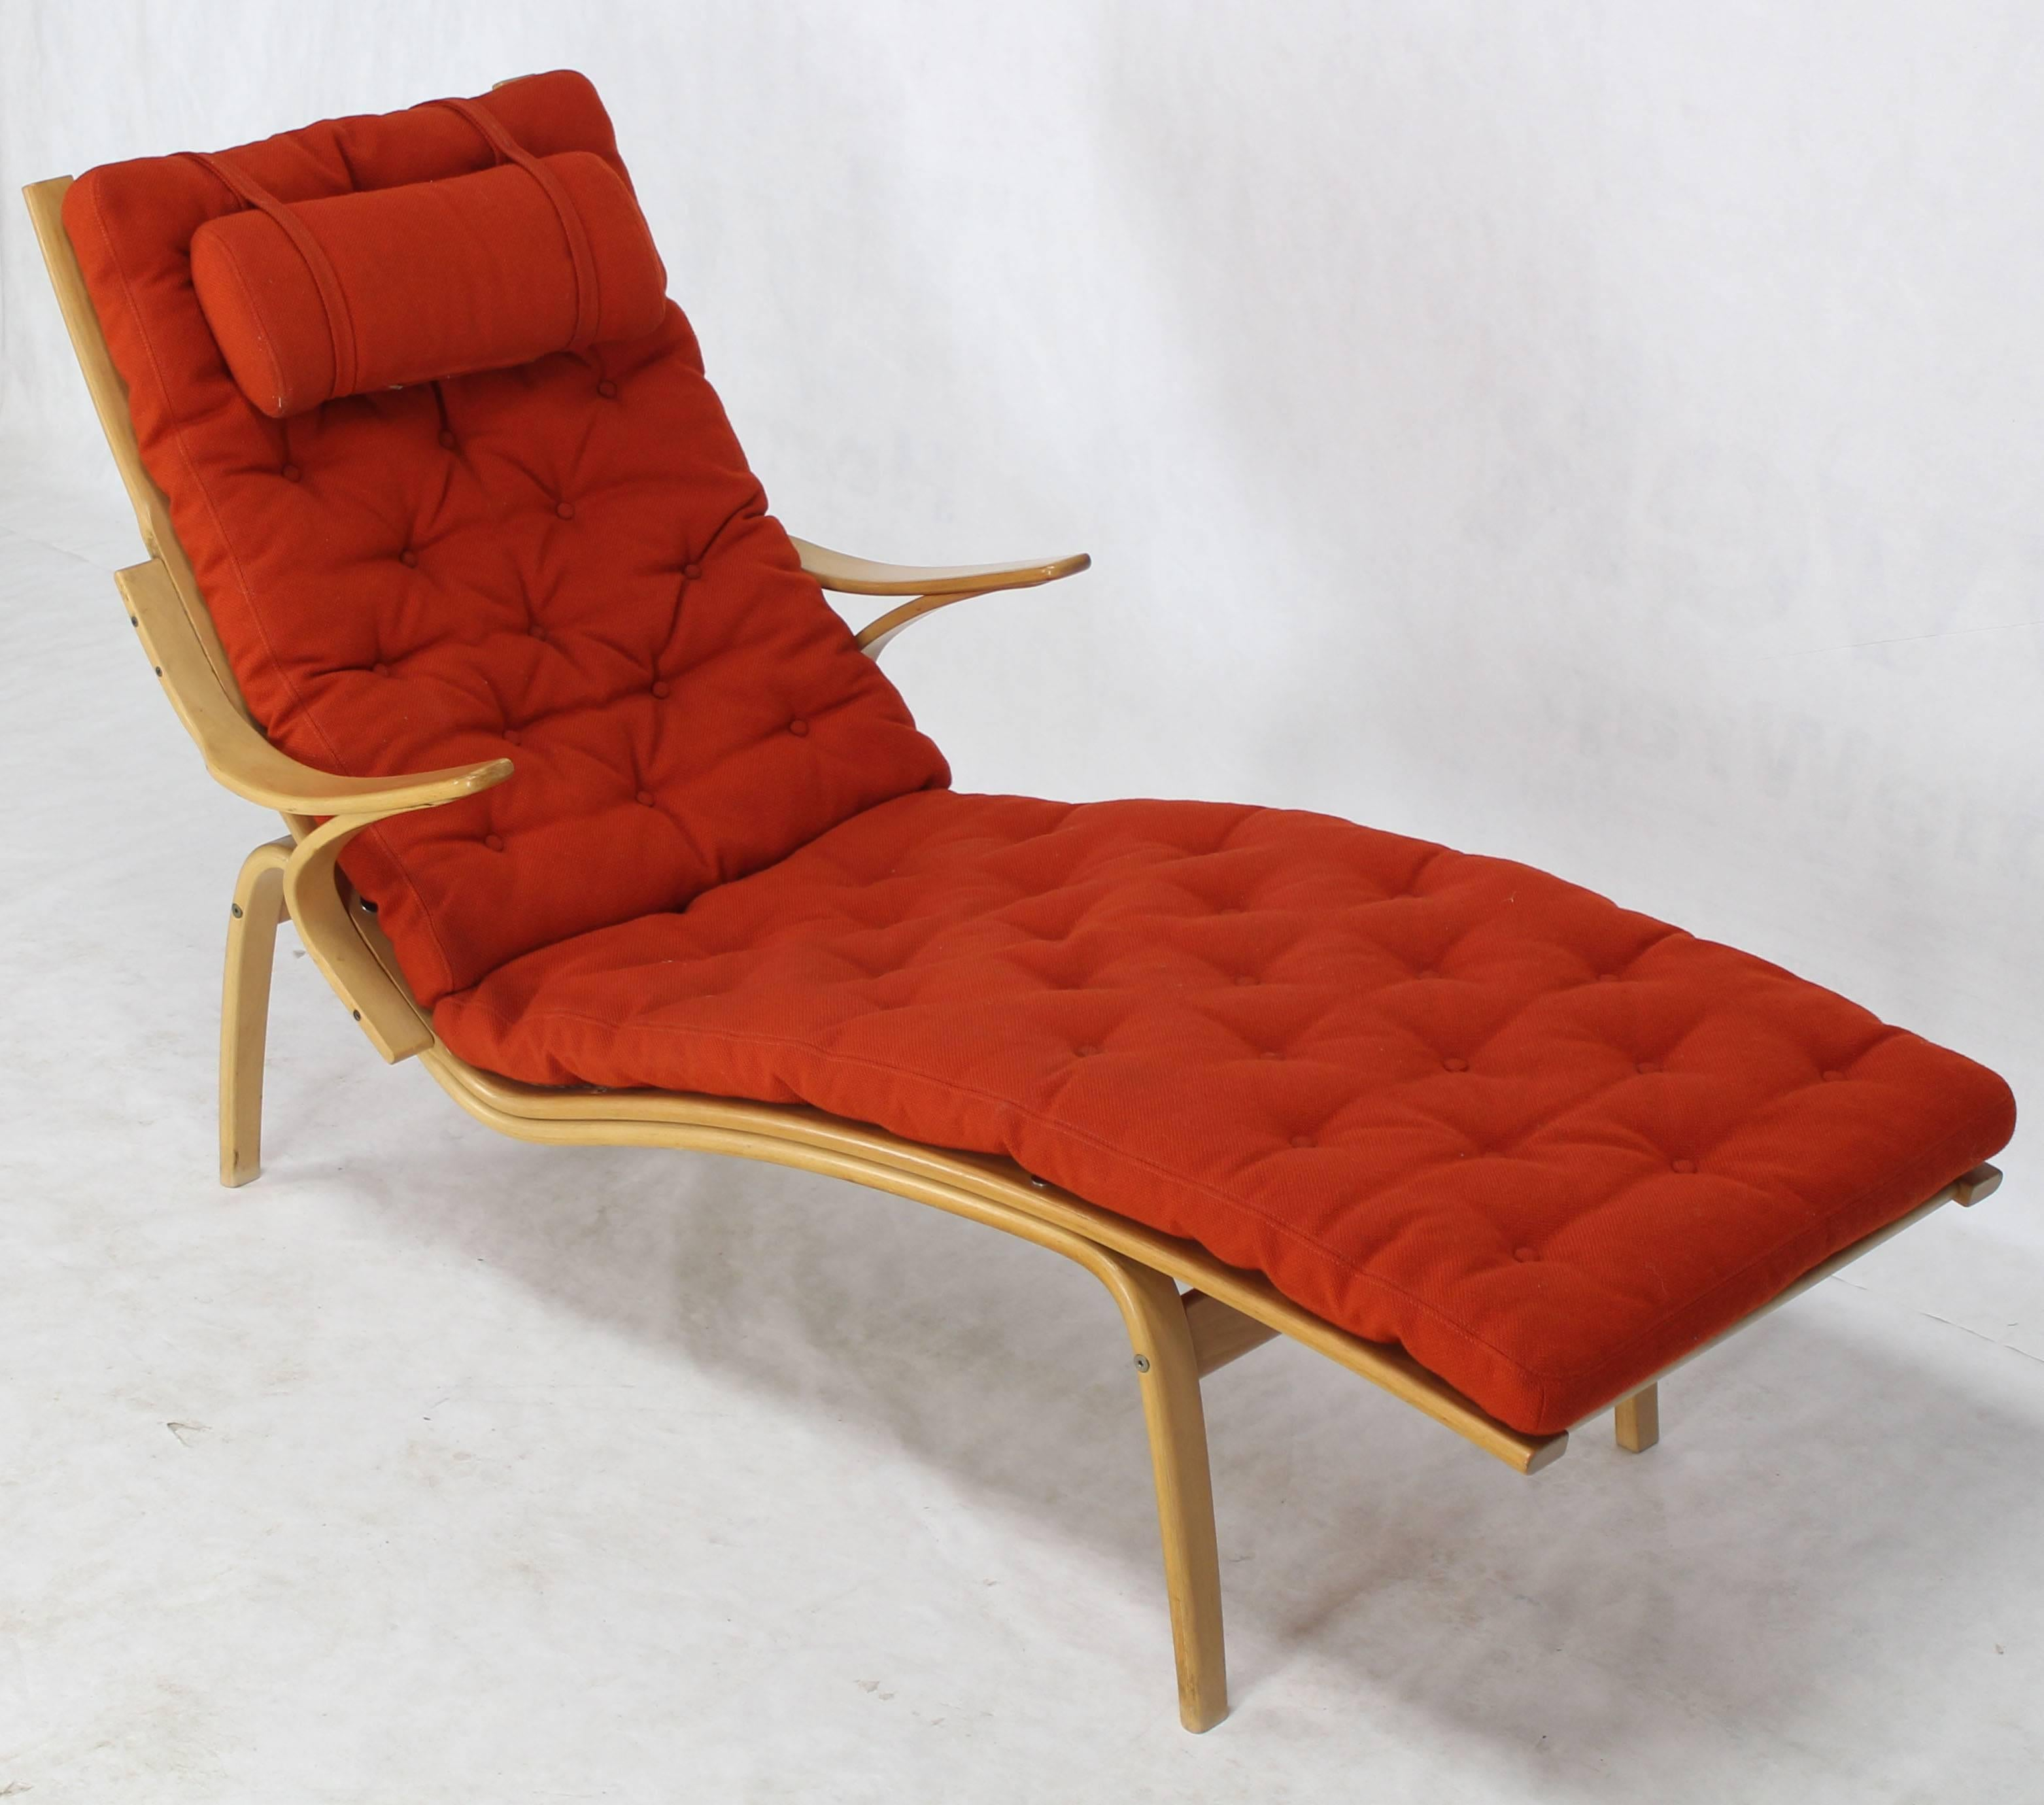 free product bella lounge berry red home overstock today shipping chaise garden